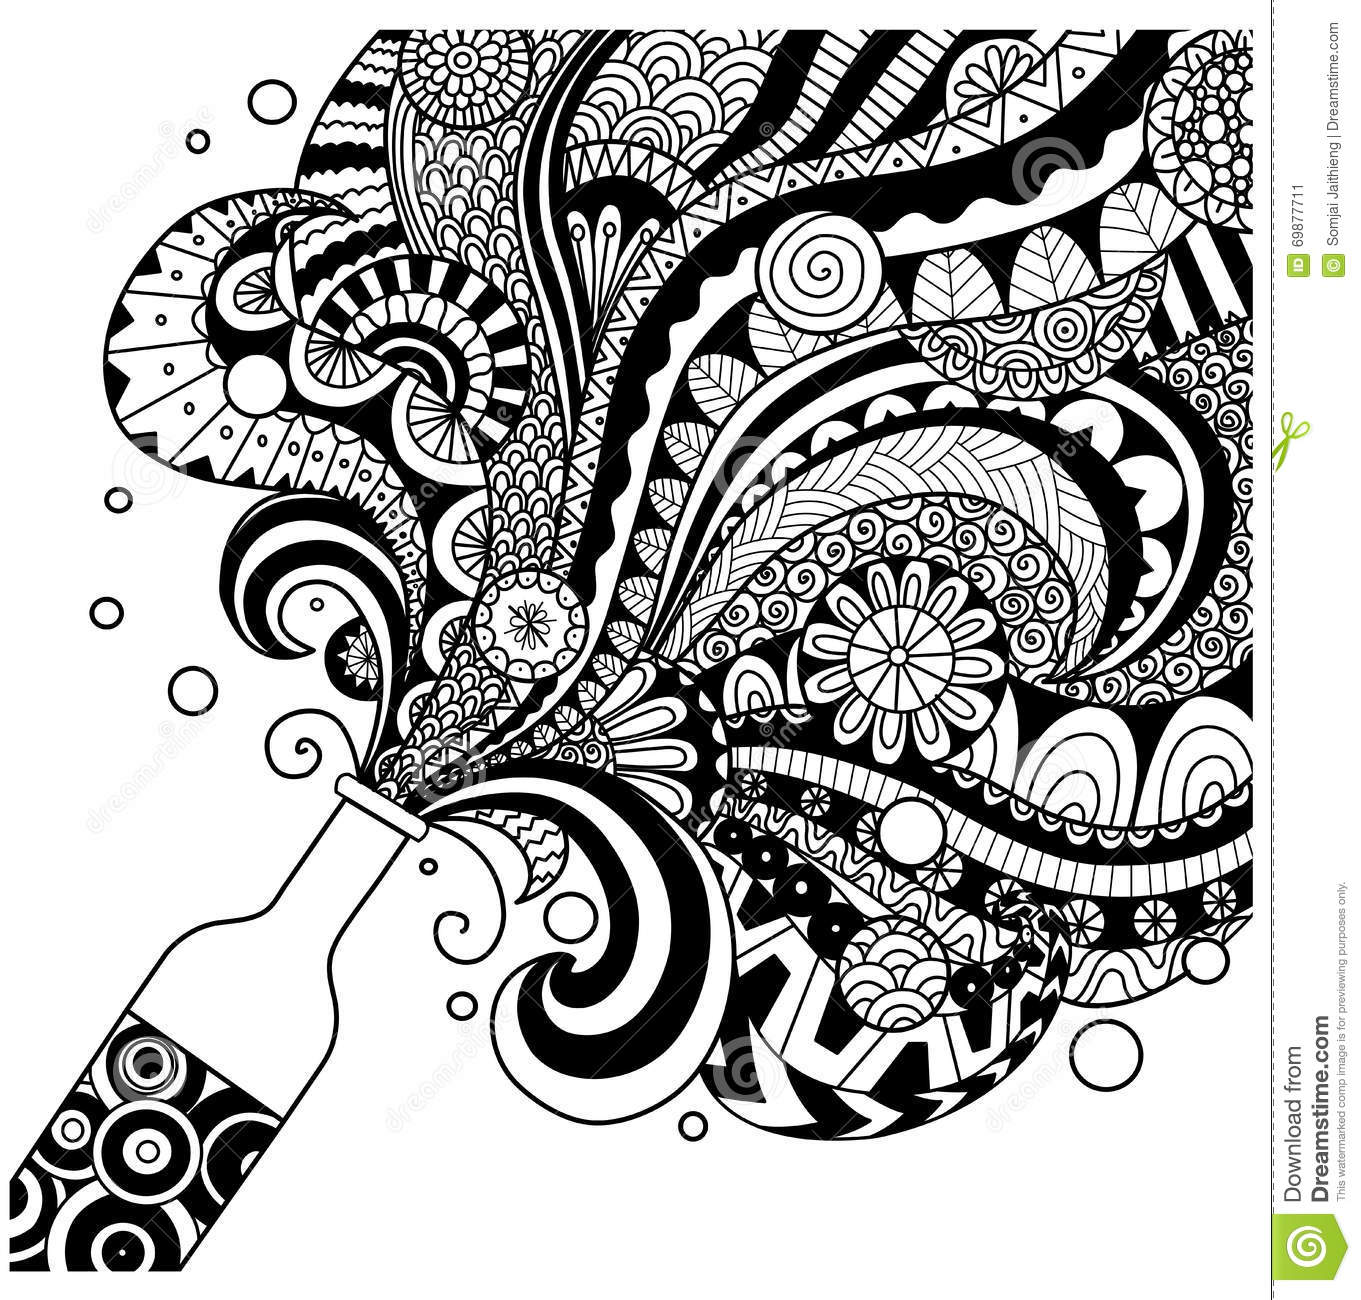 Line Art Card Design : Champagne bottle line art design for coloring book